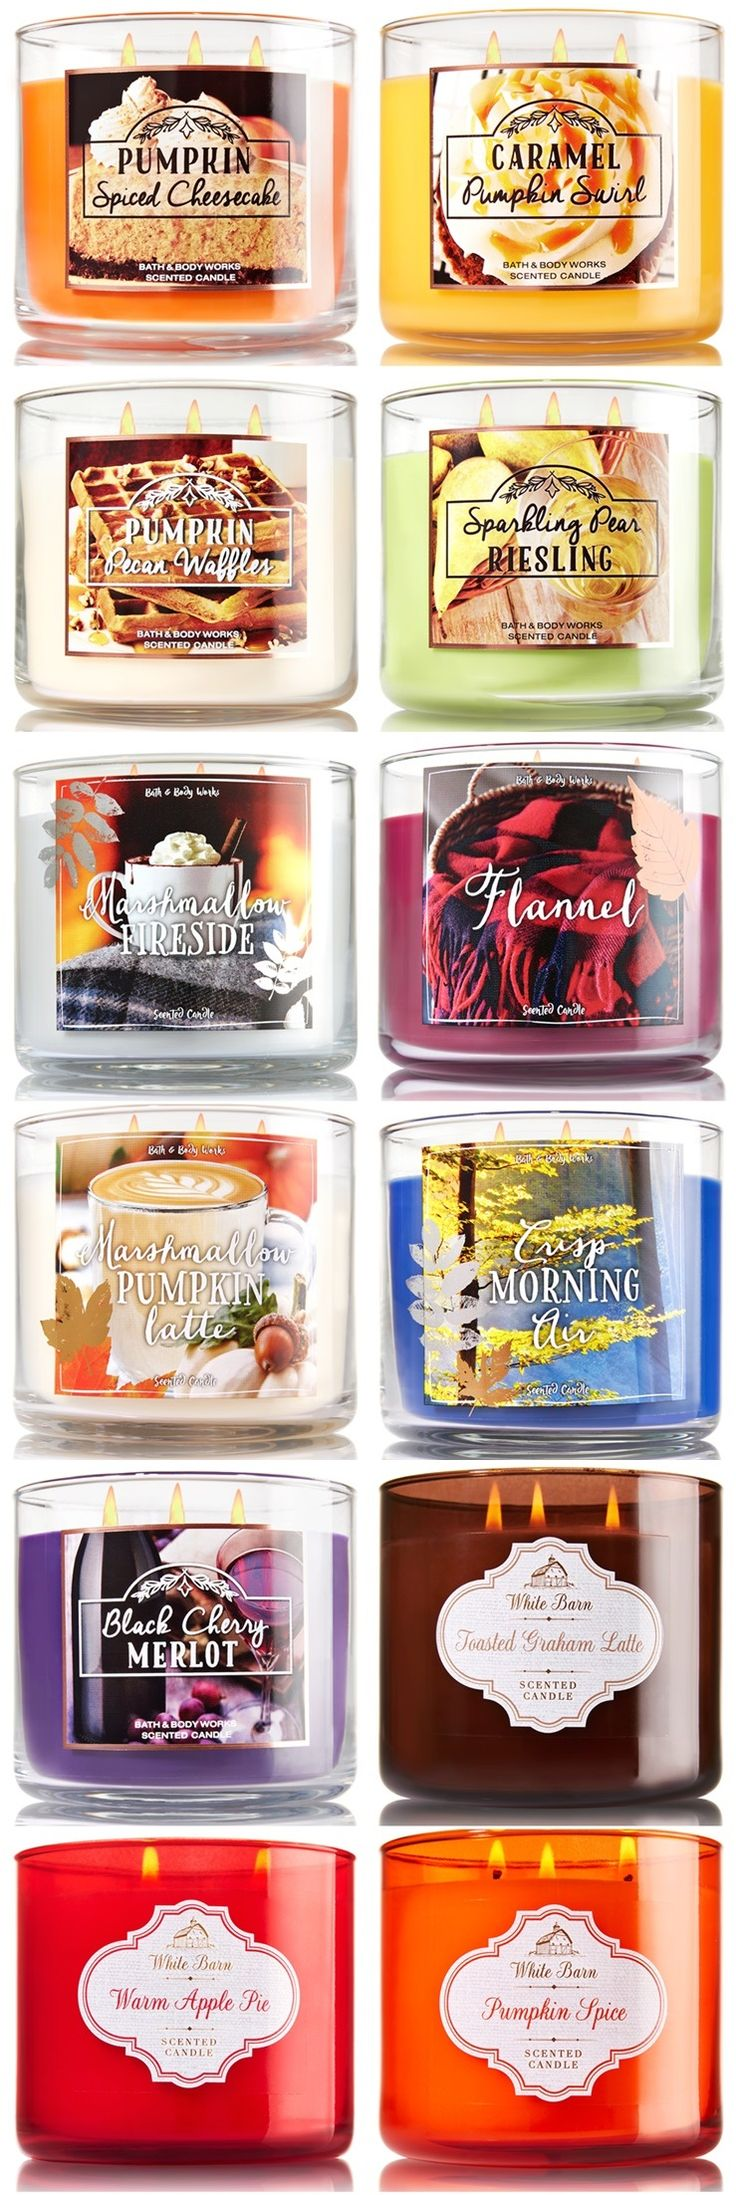 Bath & Body Works Fall 2016 Candles